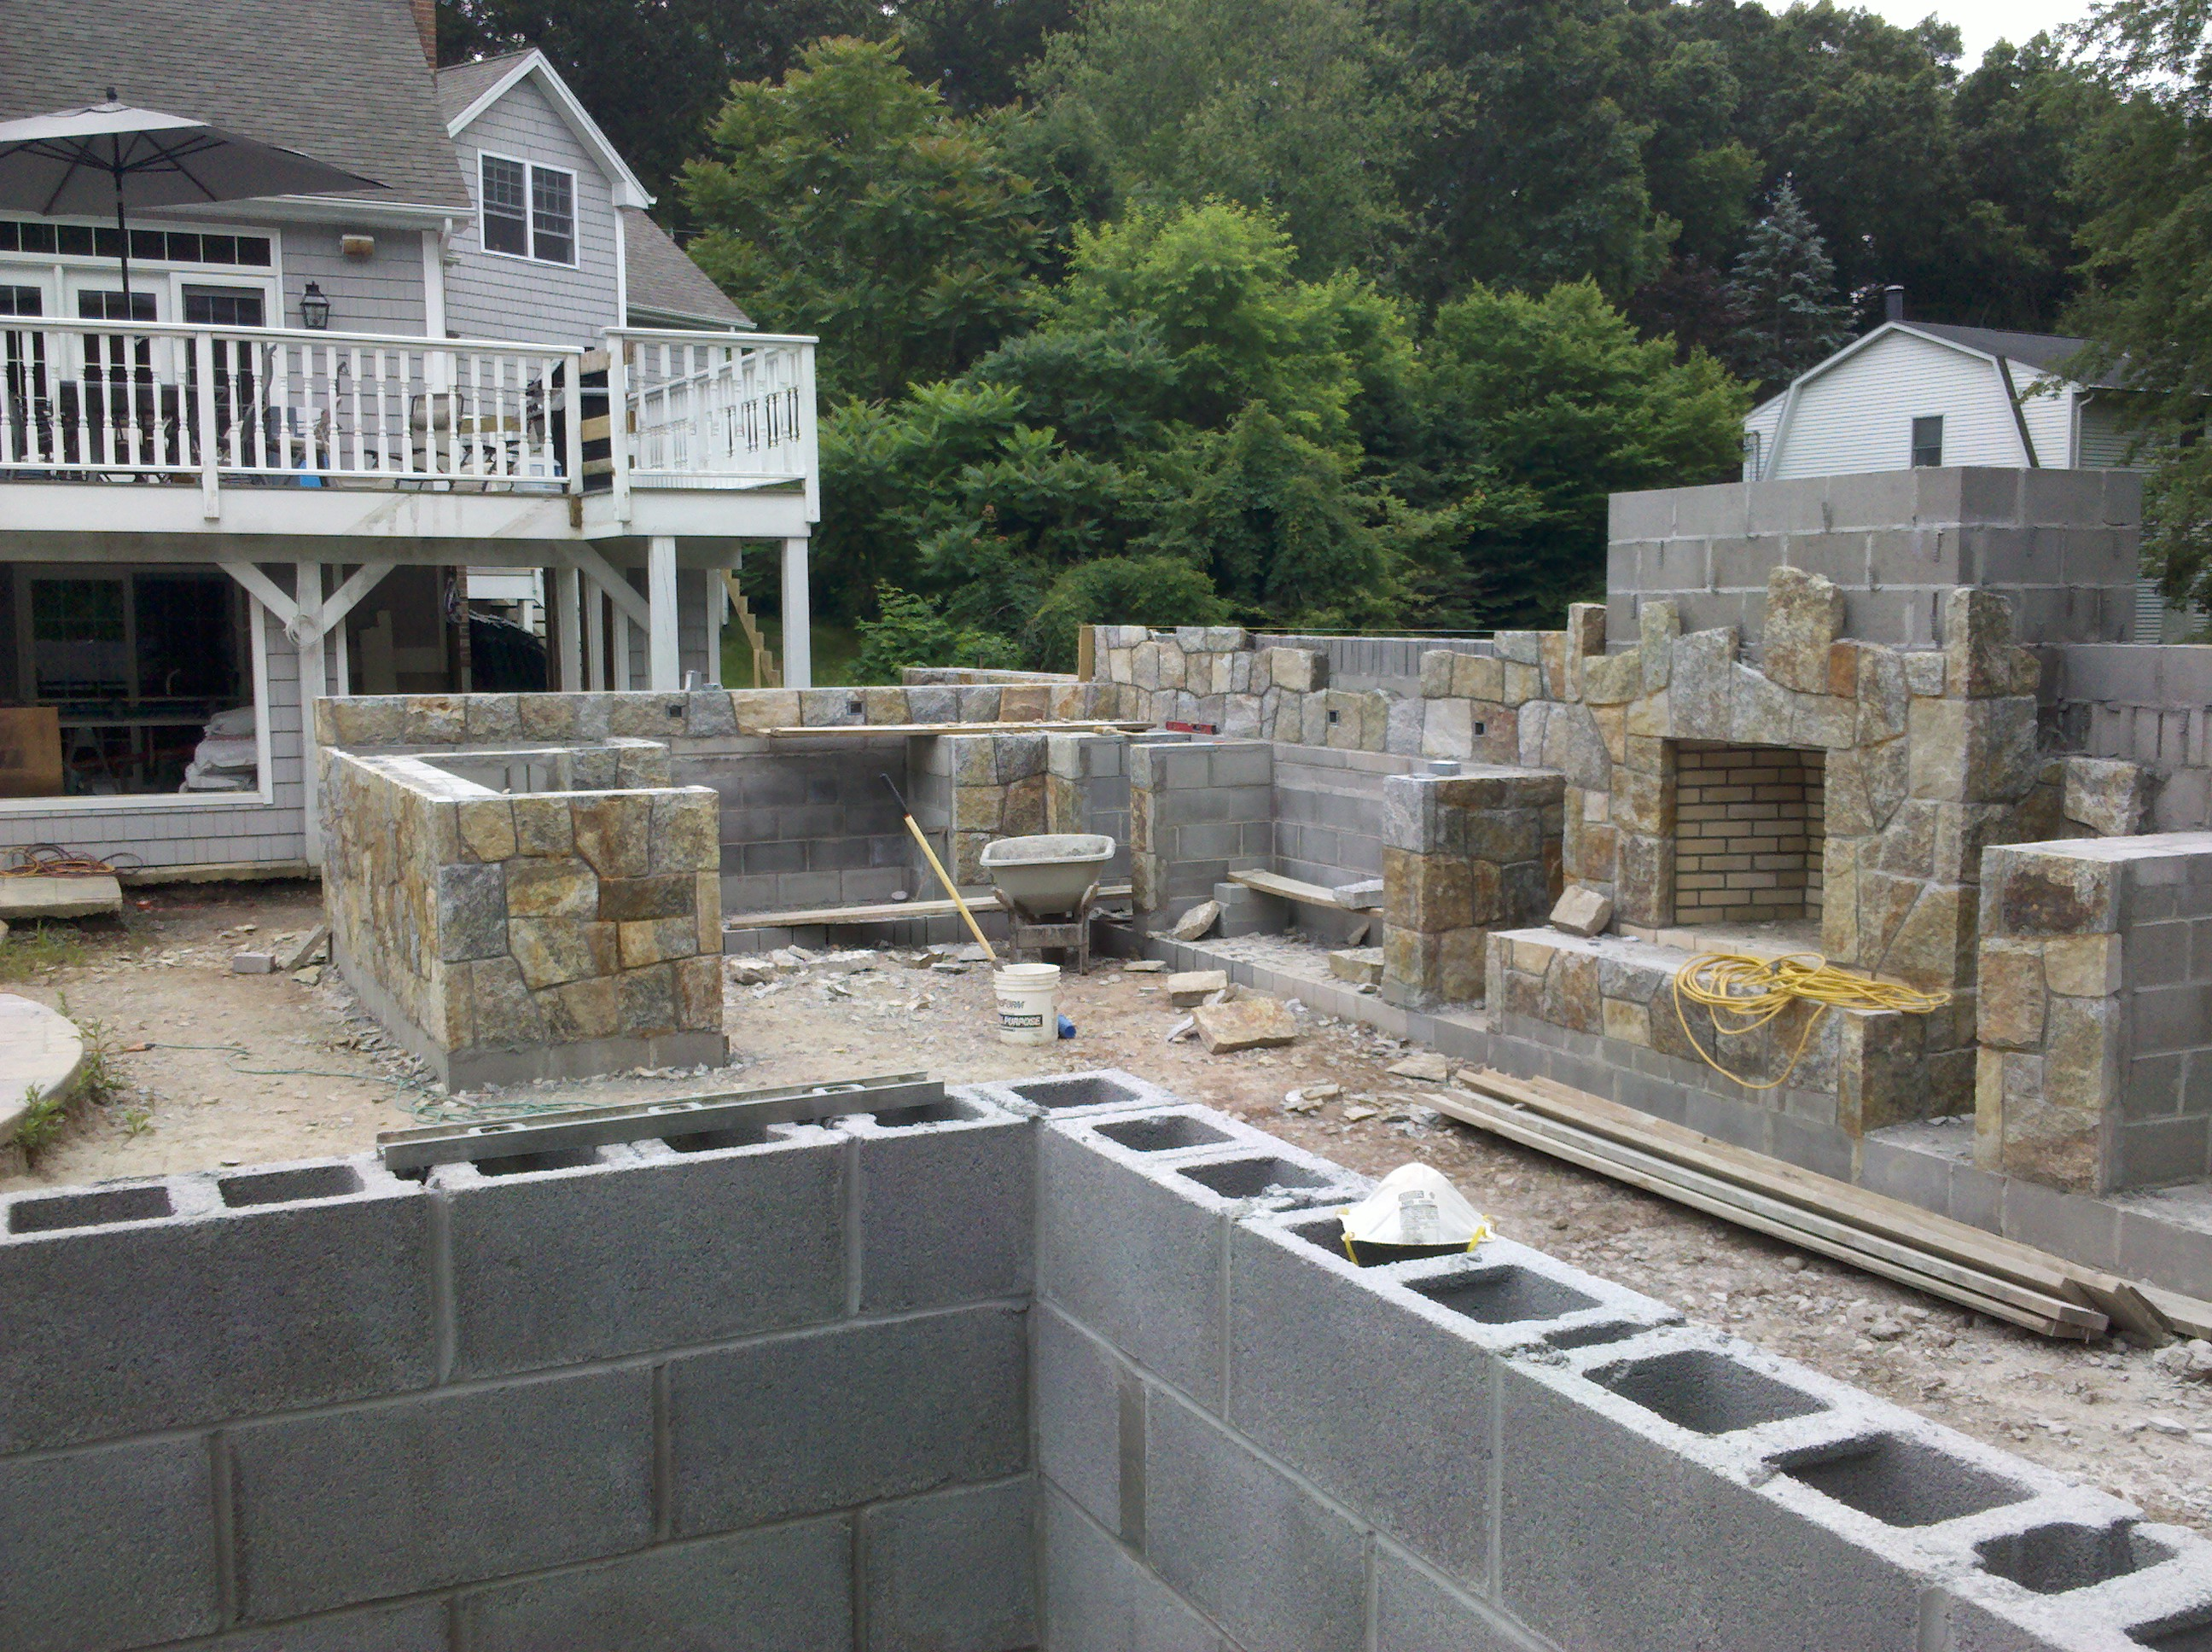 outdoor living a preferred lifestyle seen under construction